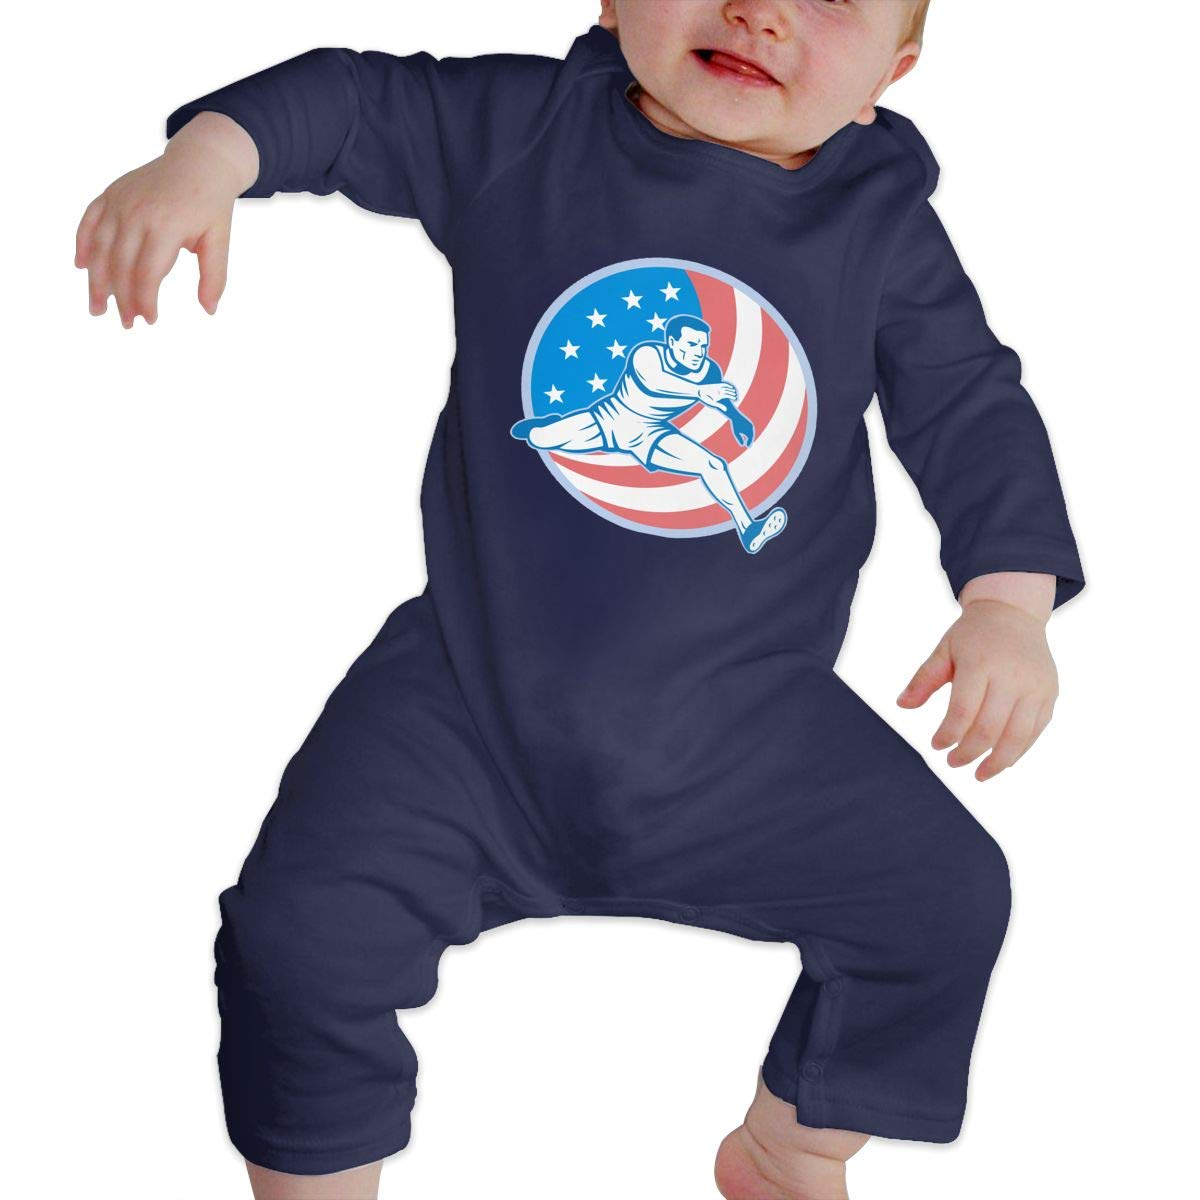 Q64 Toddler Round Collar Track and Field US Flag Long Sleeve Romper Jumpsuit 100/% Cotton Suit 6-24 Months